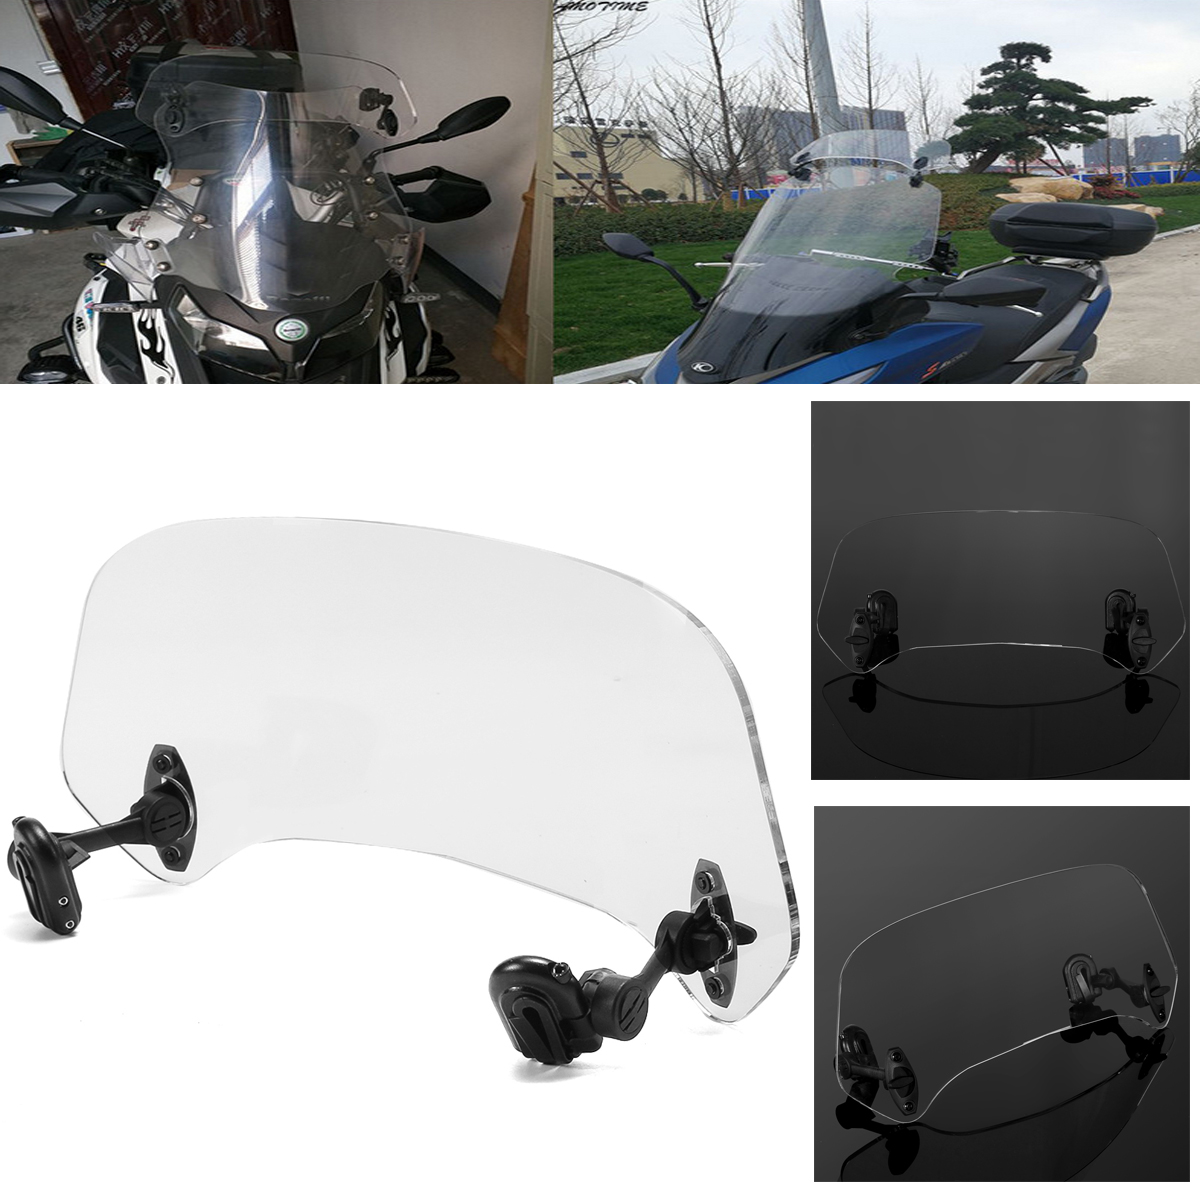 Motorcycle Risen Adjustable Wind Screen Windshield Extension Spoiler Air Deflector Wind Deflector for BMW Kawasaki Yamaha 49 45cm for 125cc 150cc motorcycle windscreen deflector wind deflector wind shield windscherm scooter free shipping